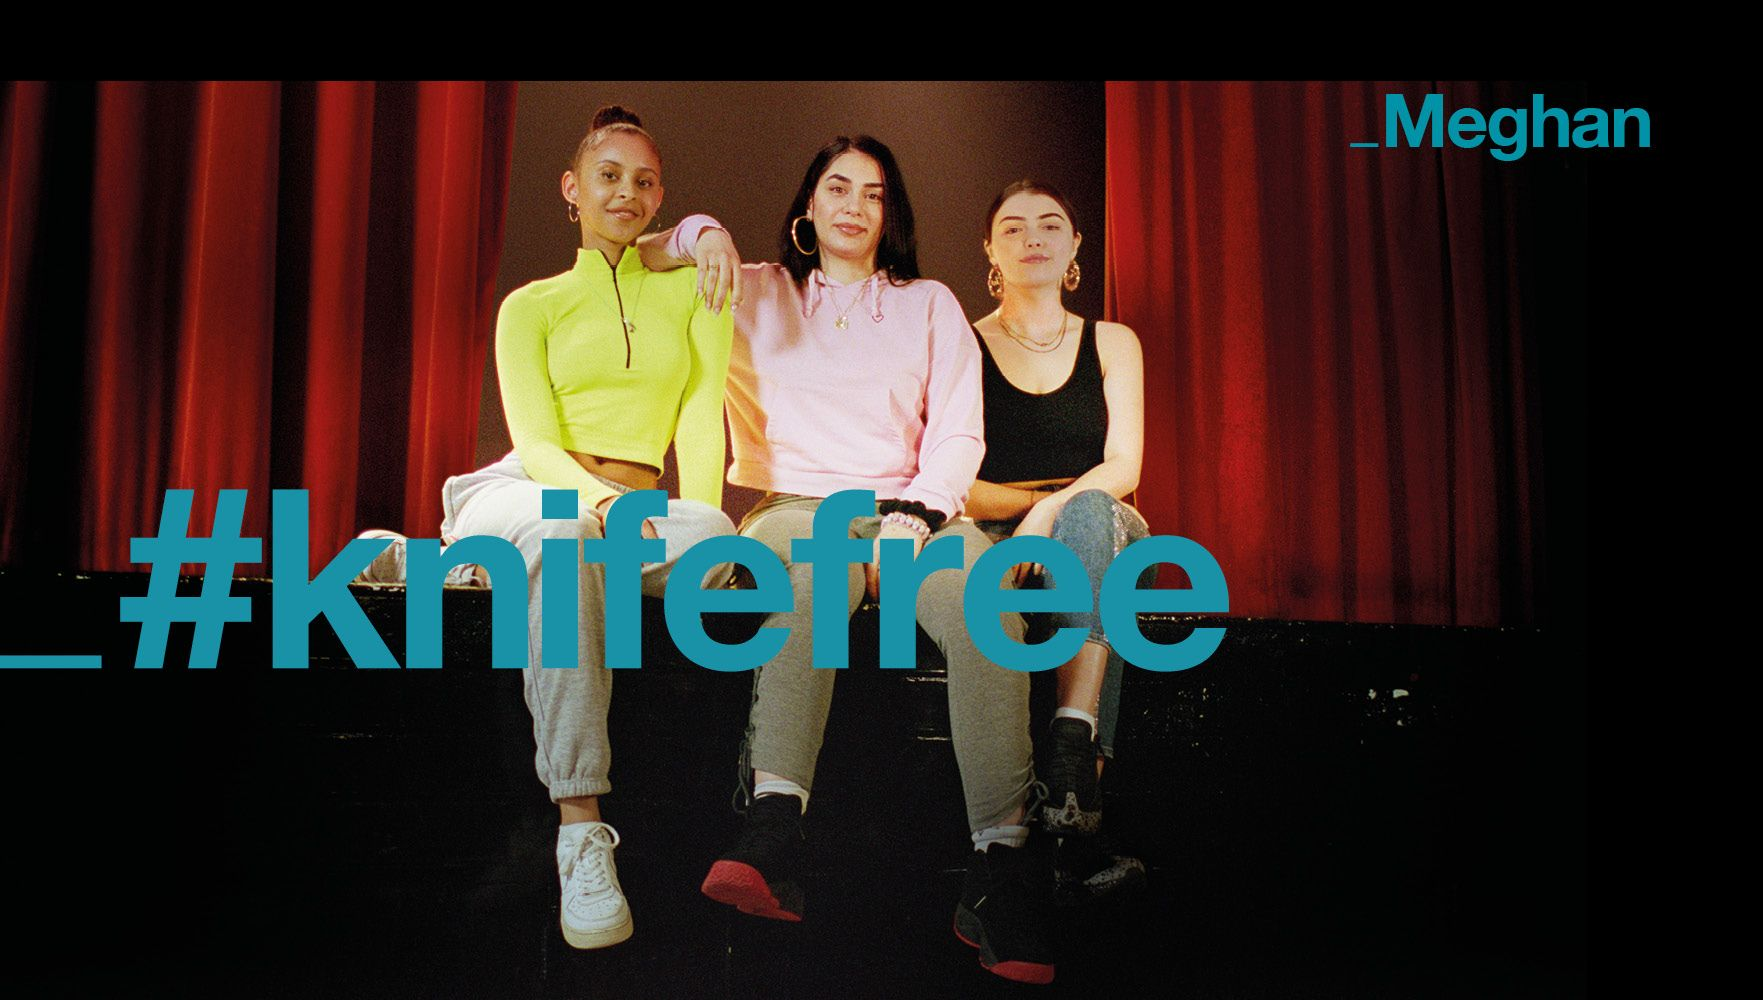 three young women sit on the edge of a stage with '#knifefree' superimposed on the image in turquoise lettering